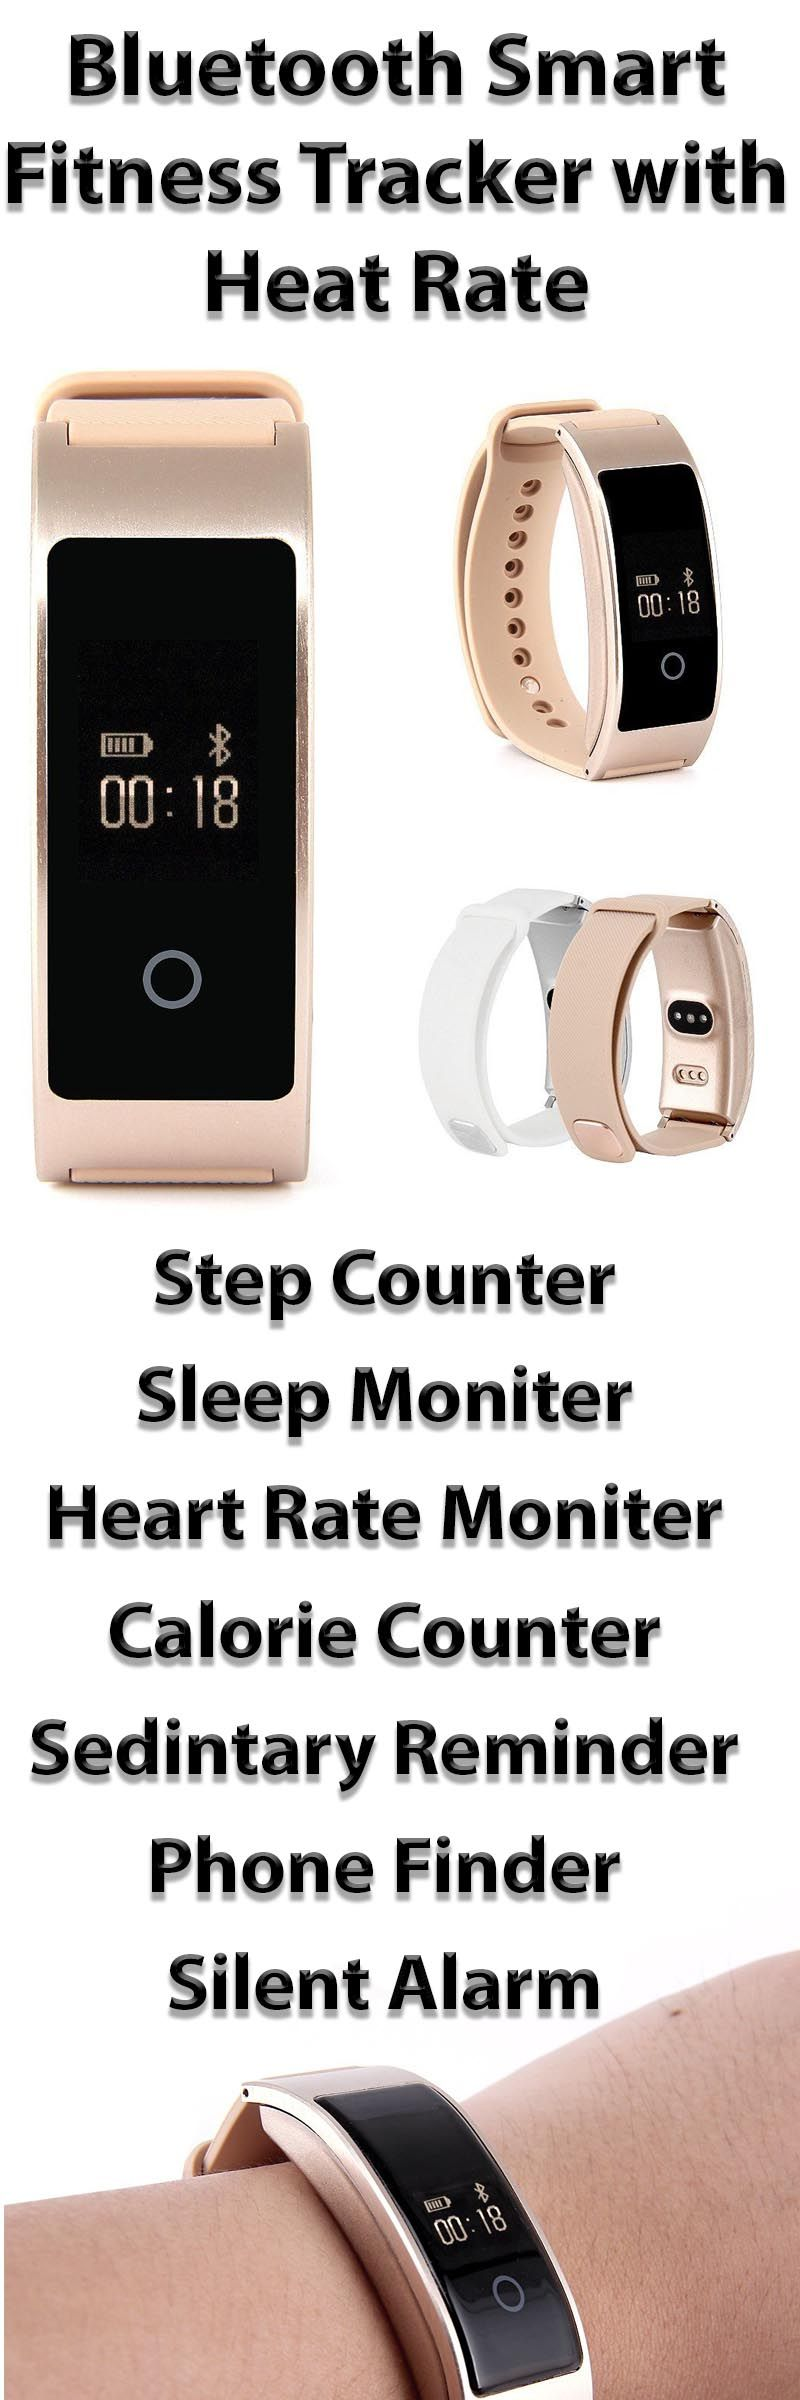 This fitness tracker has all the features you want at a price you will love. Count steps, monitor sleep, monitor heart rate, calculate calories and more! www.wellvoo.ca